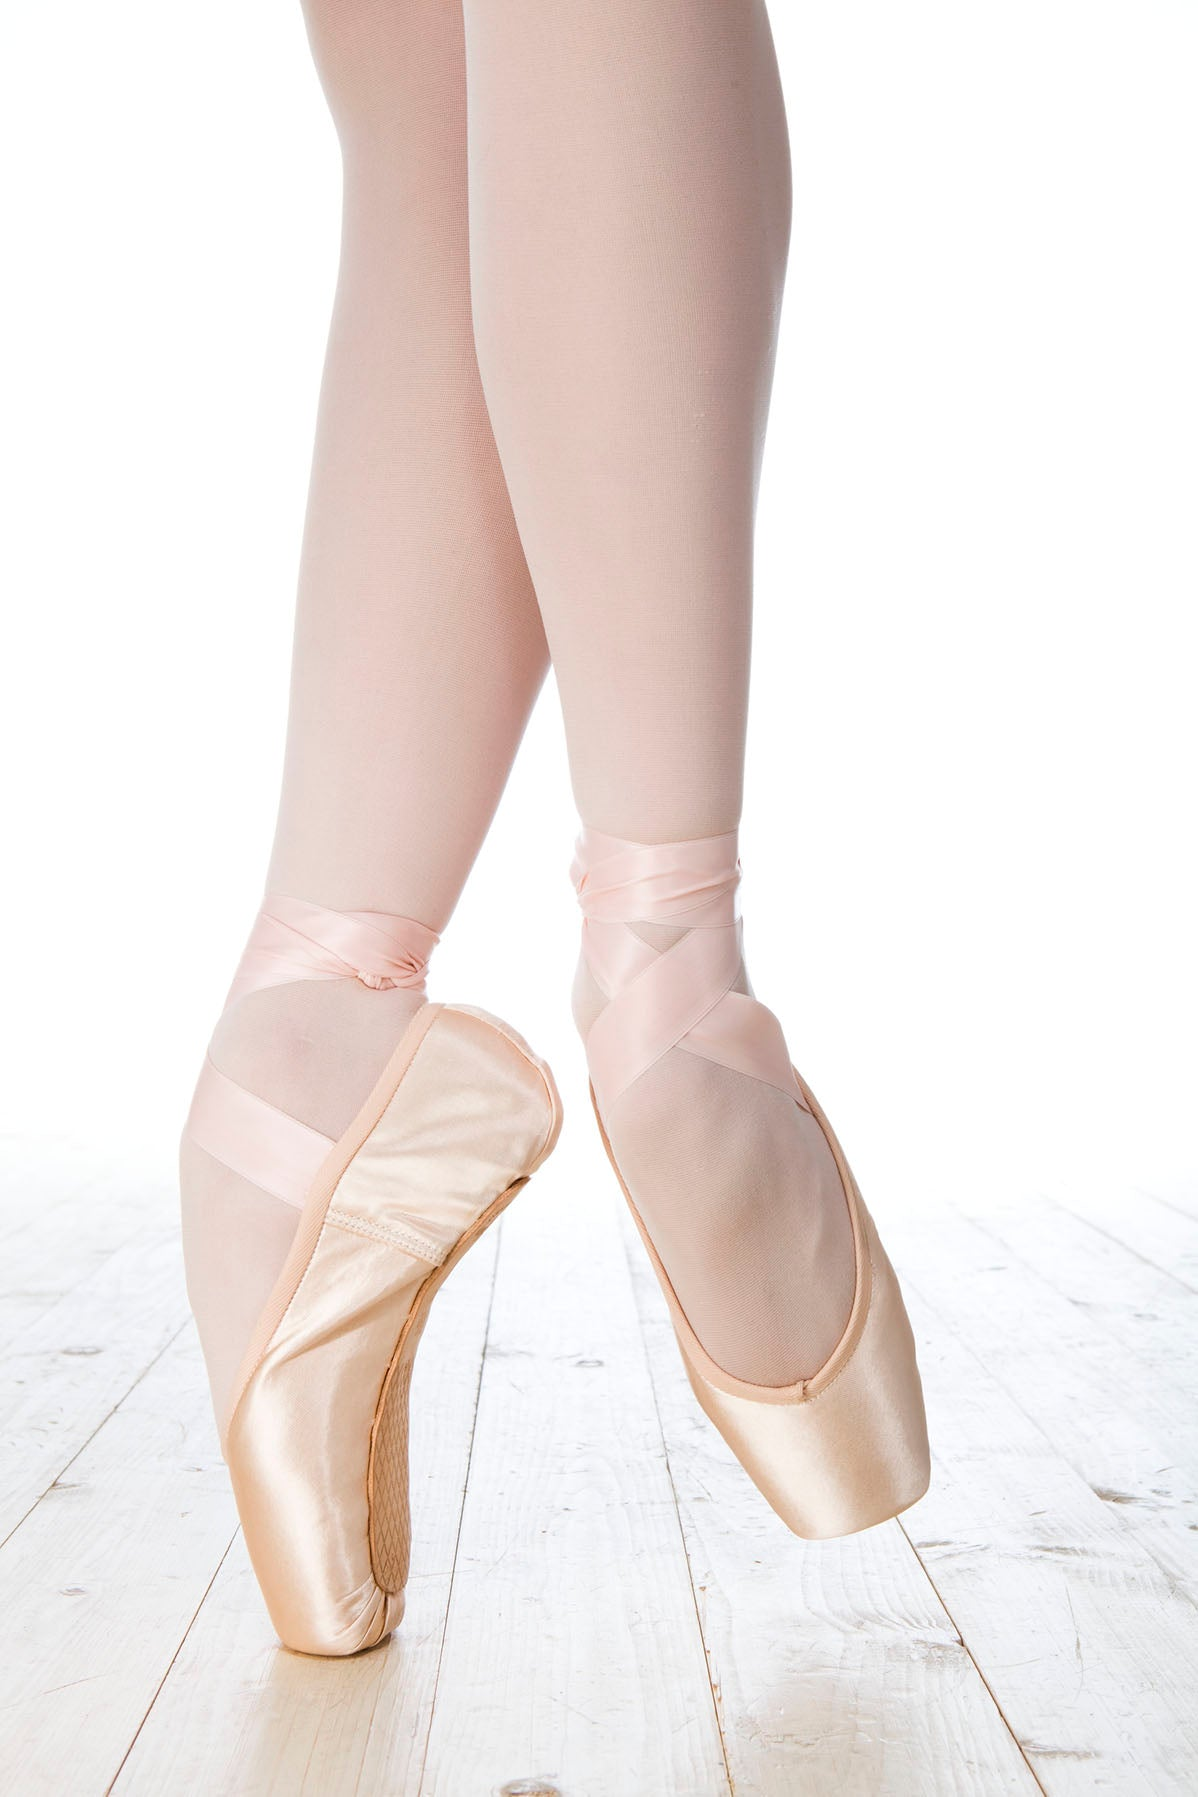 GRISHKO TRIUMPH HARD Pointe Shoe